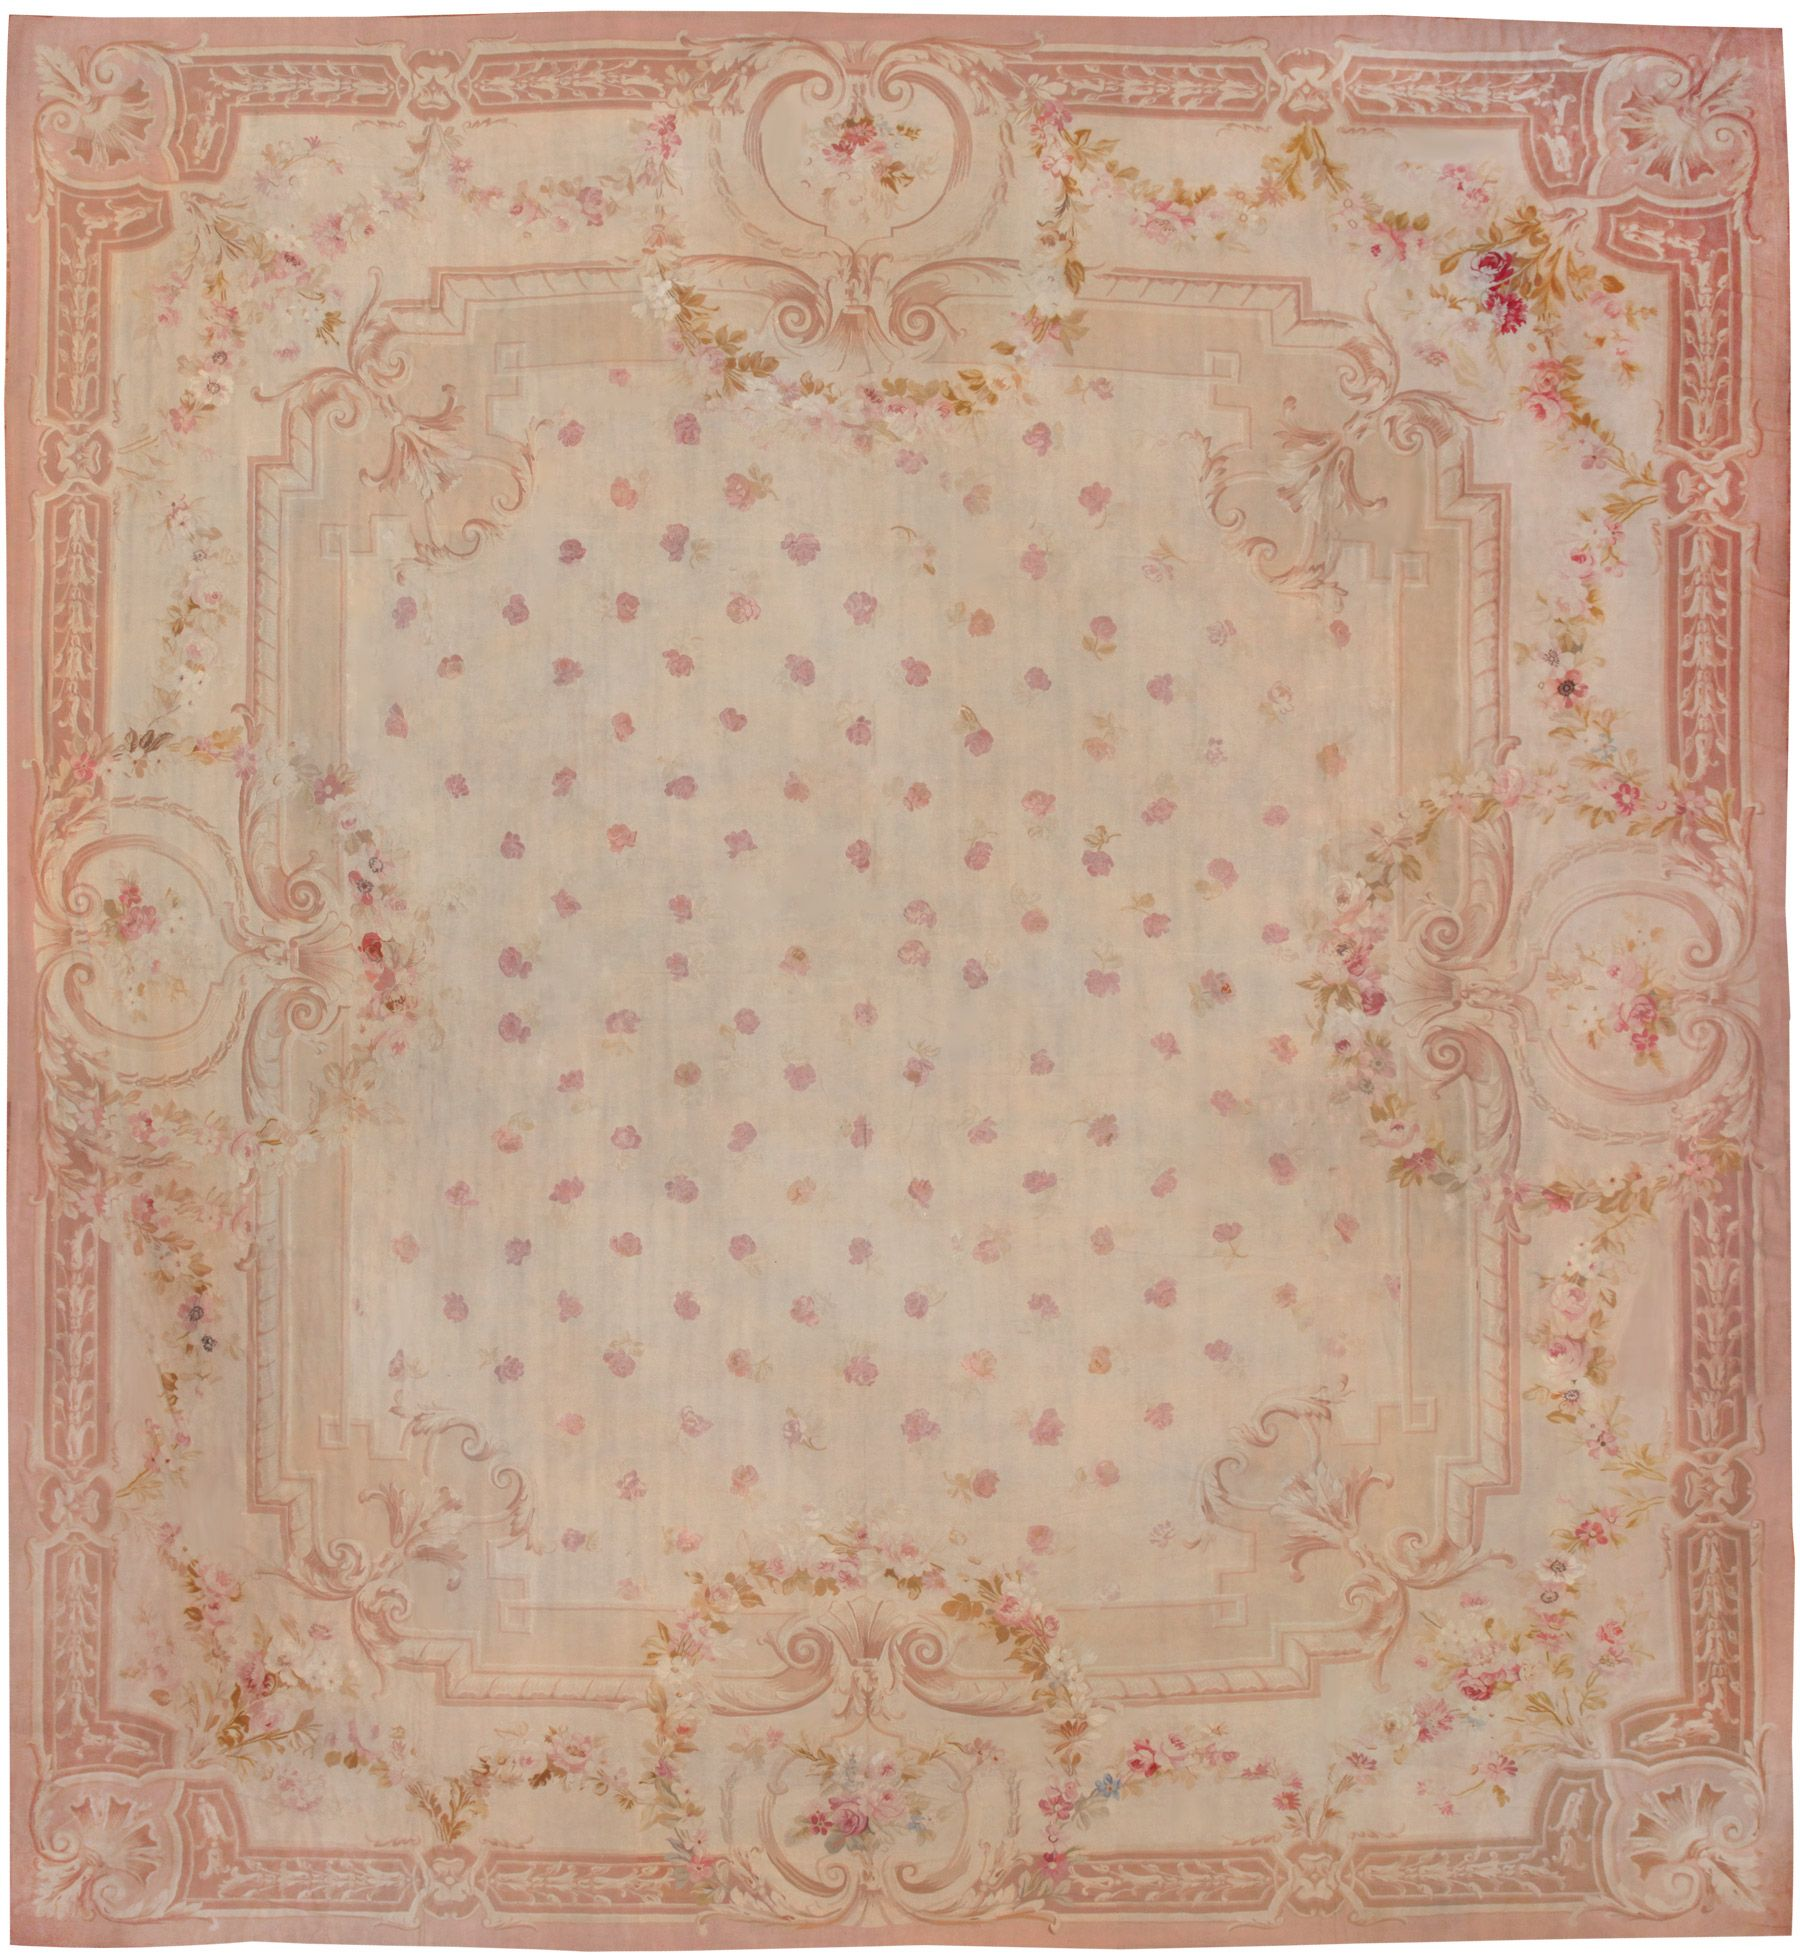 Antique Aubusson French Rug 8515 Detail Large View By Nazmiyal